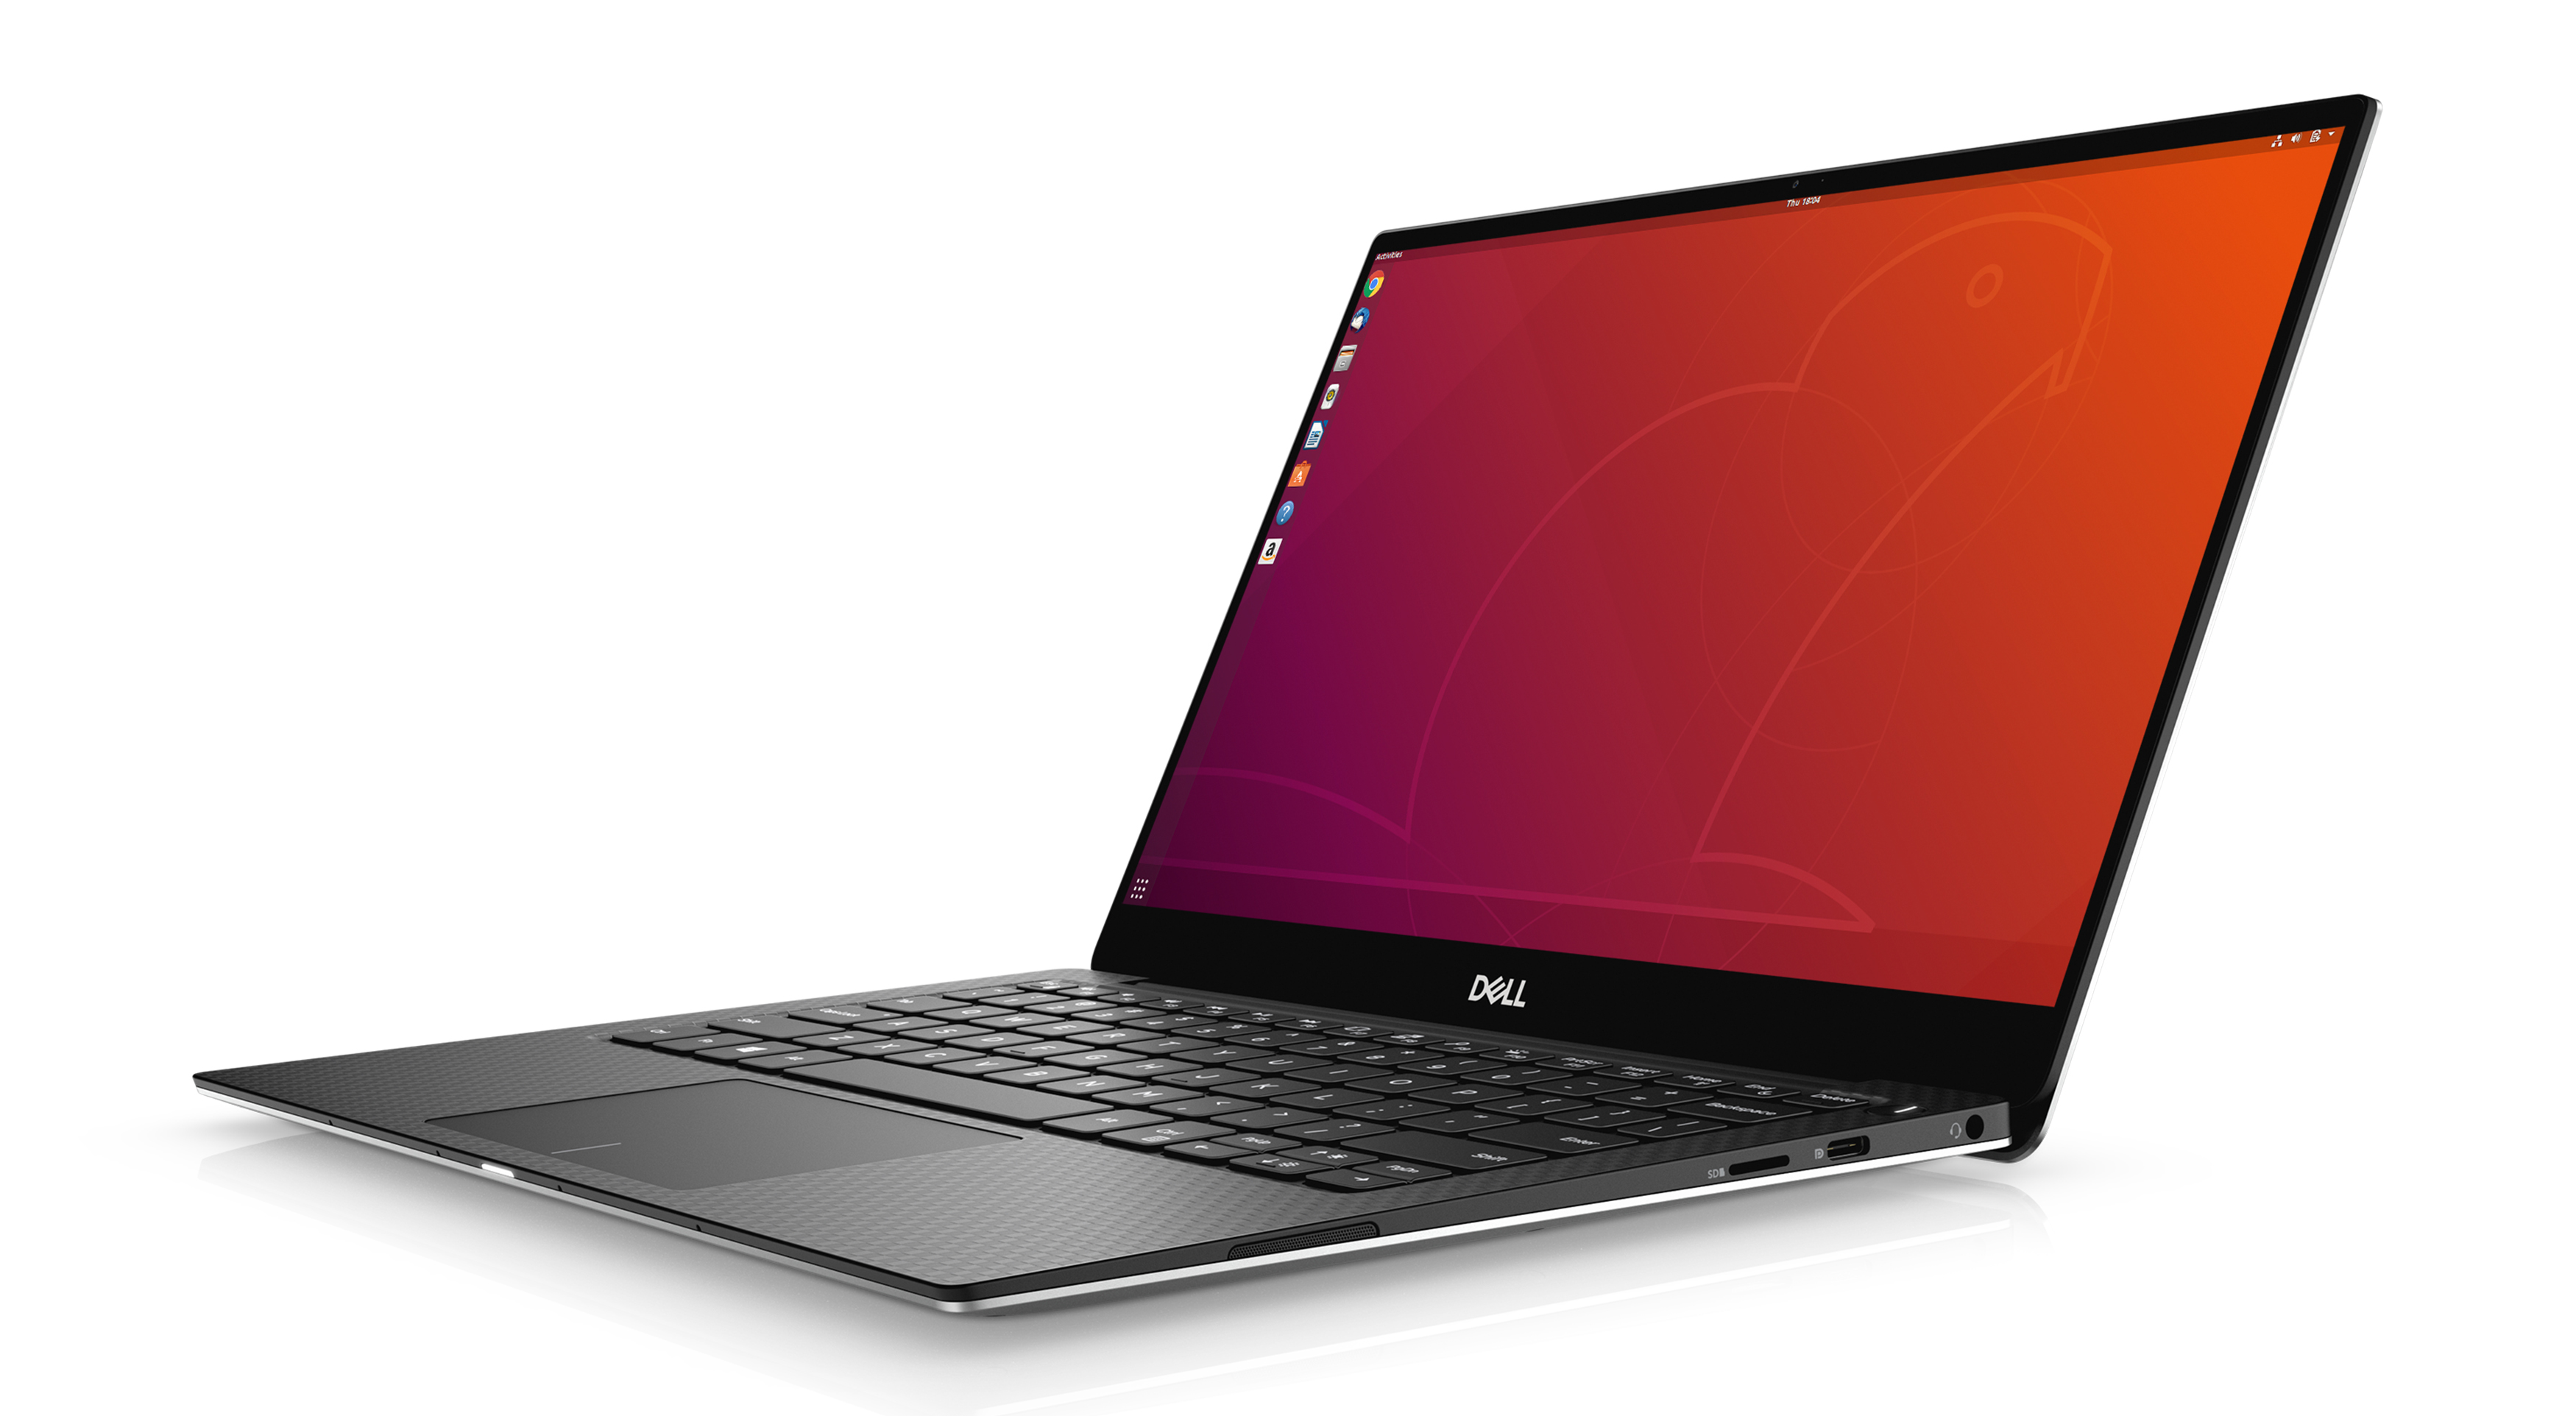 Arriva il nuovo Dell XPS 13 developer edition (7390)